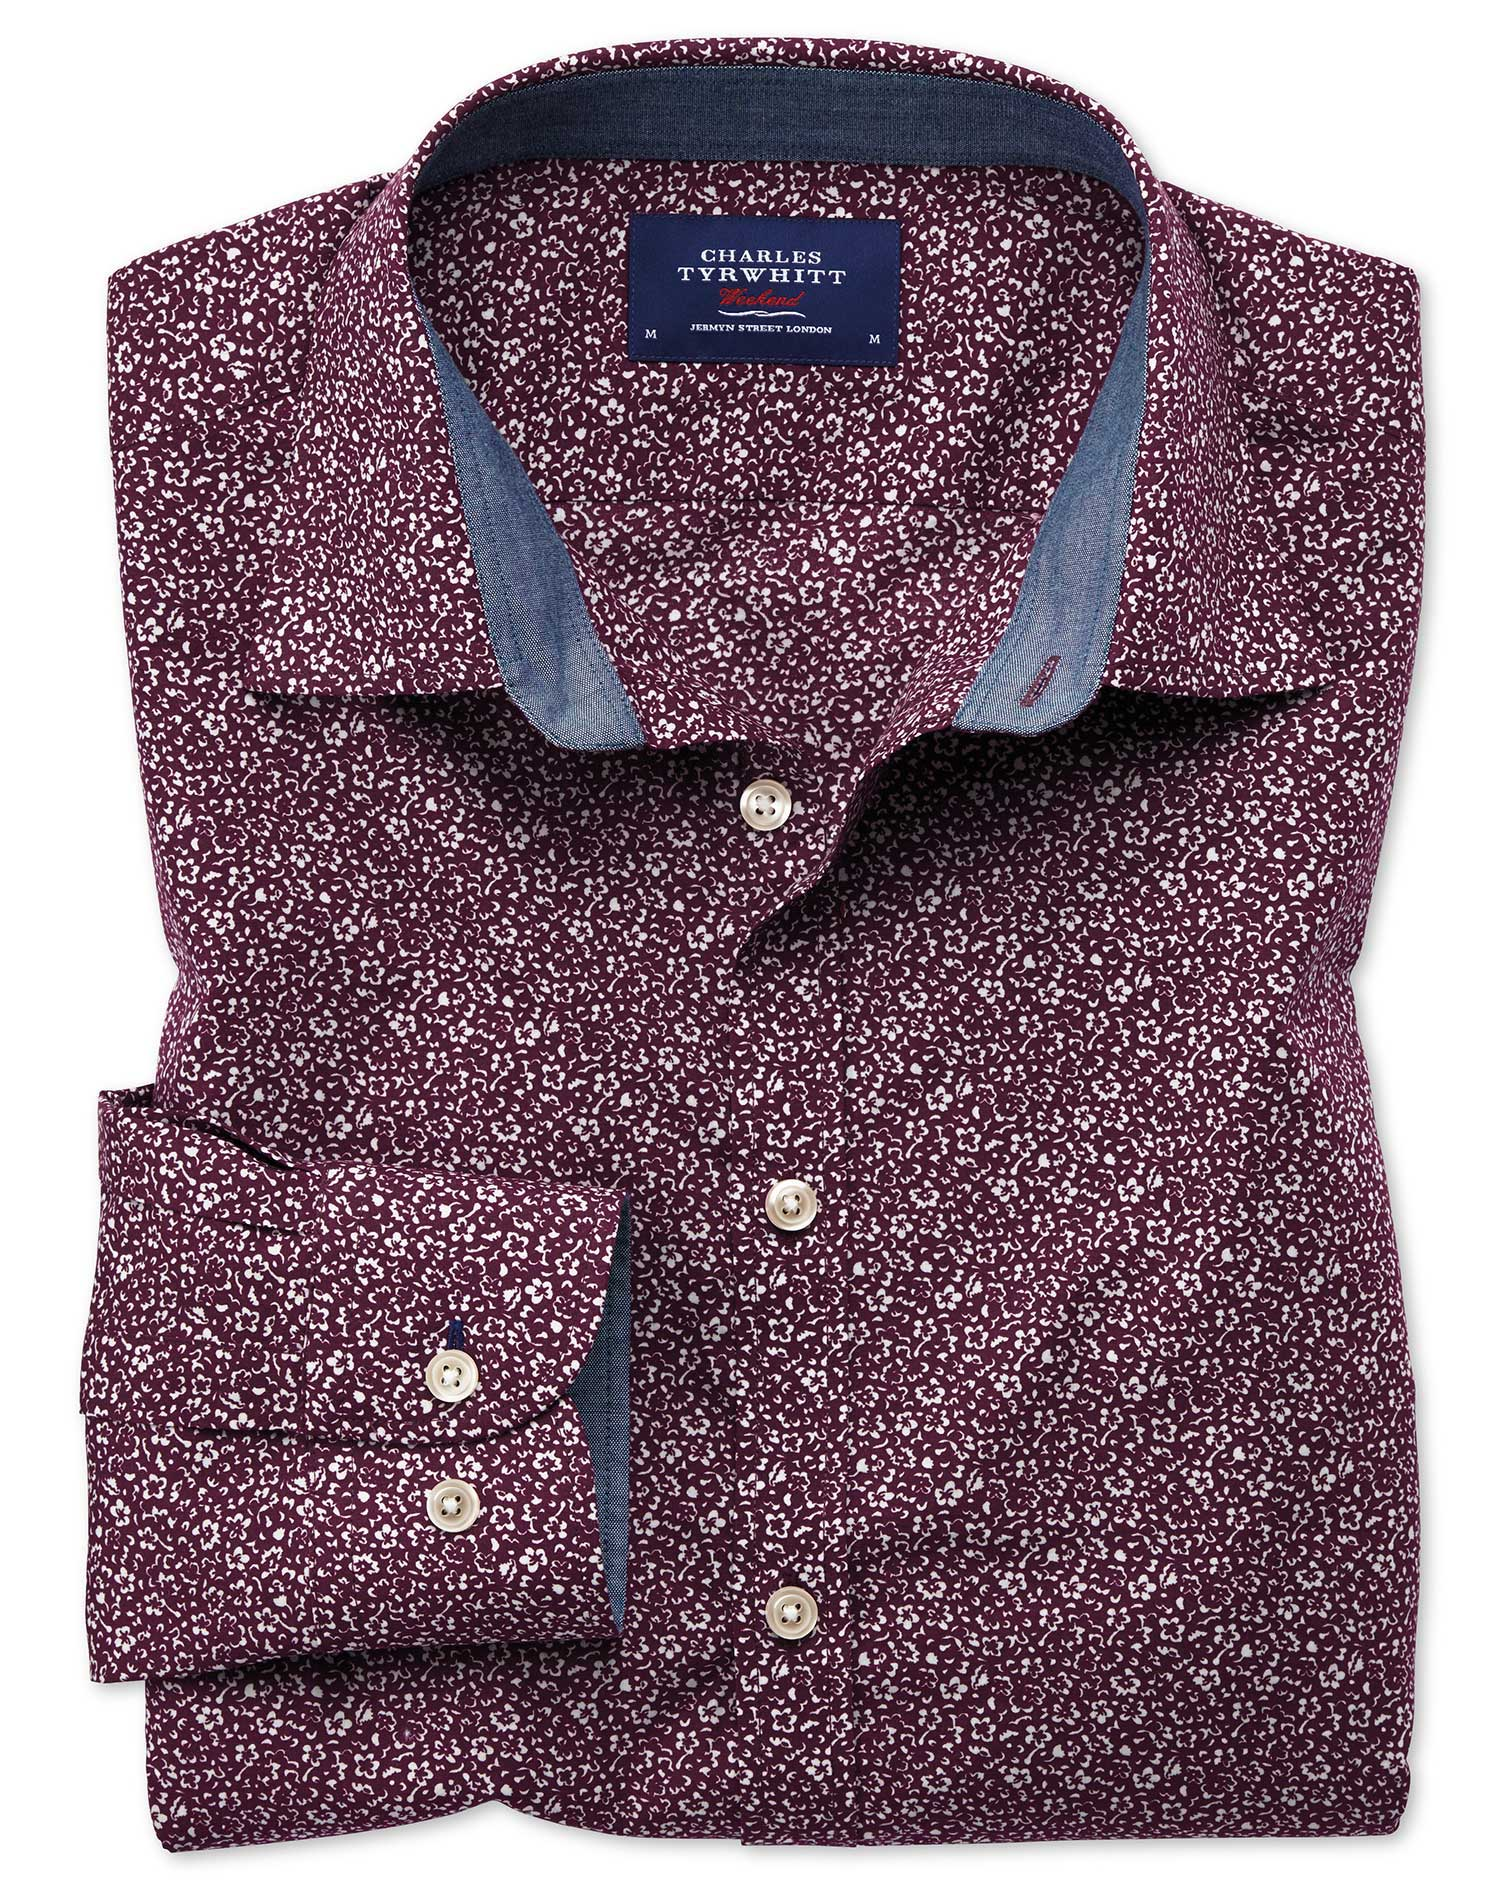 Extra Slim Fit Purple Floral Print Cotton Shirt Single Cuff Size XS by Charles Tyrwhitt